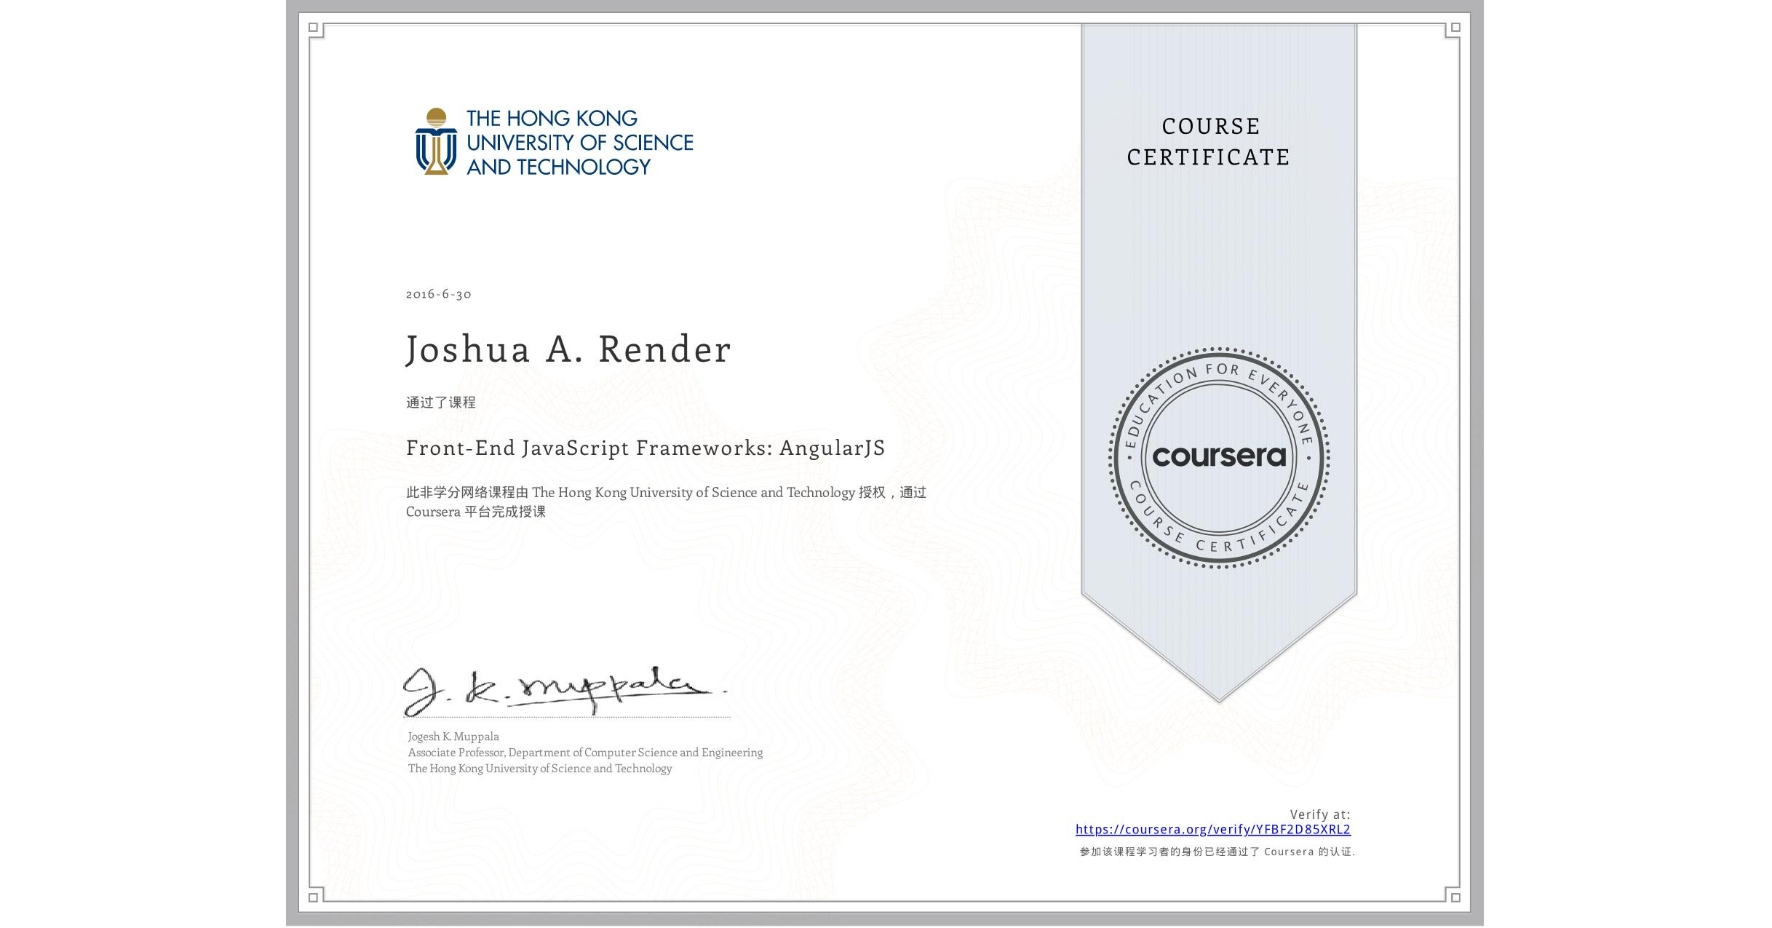 View certificate for Joshua A. Render, Front-End JavaScript Frameworks: AngularJS, an online non-credit course authorized by The Hong Kong University of Science and Technology and offered through Coursera